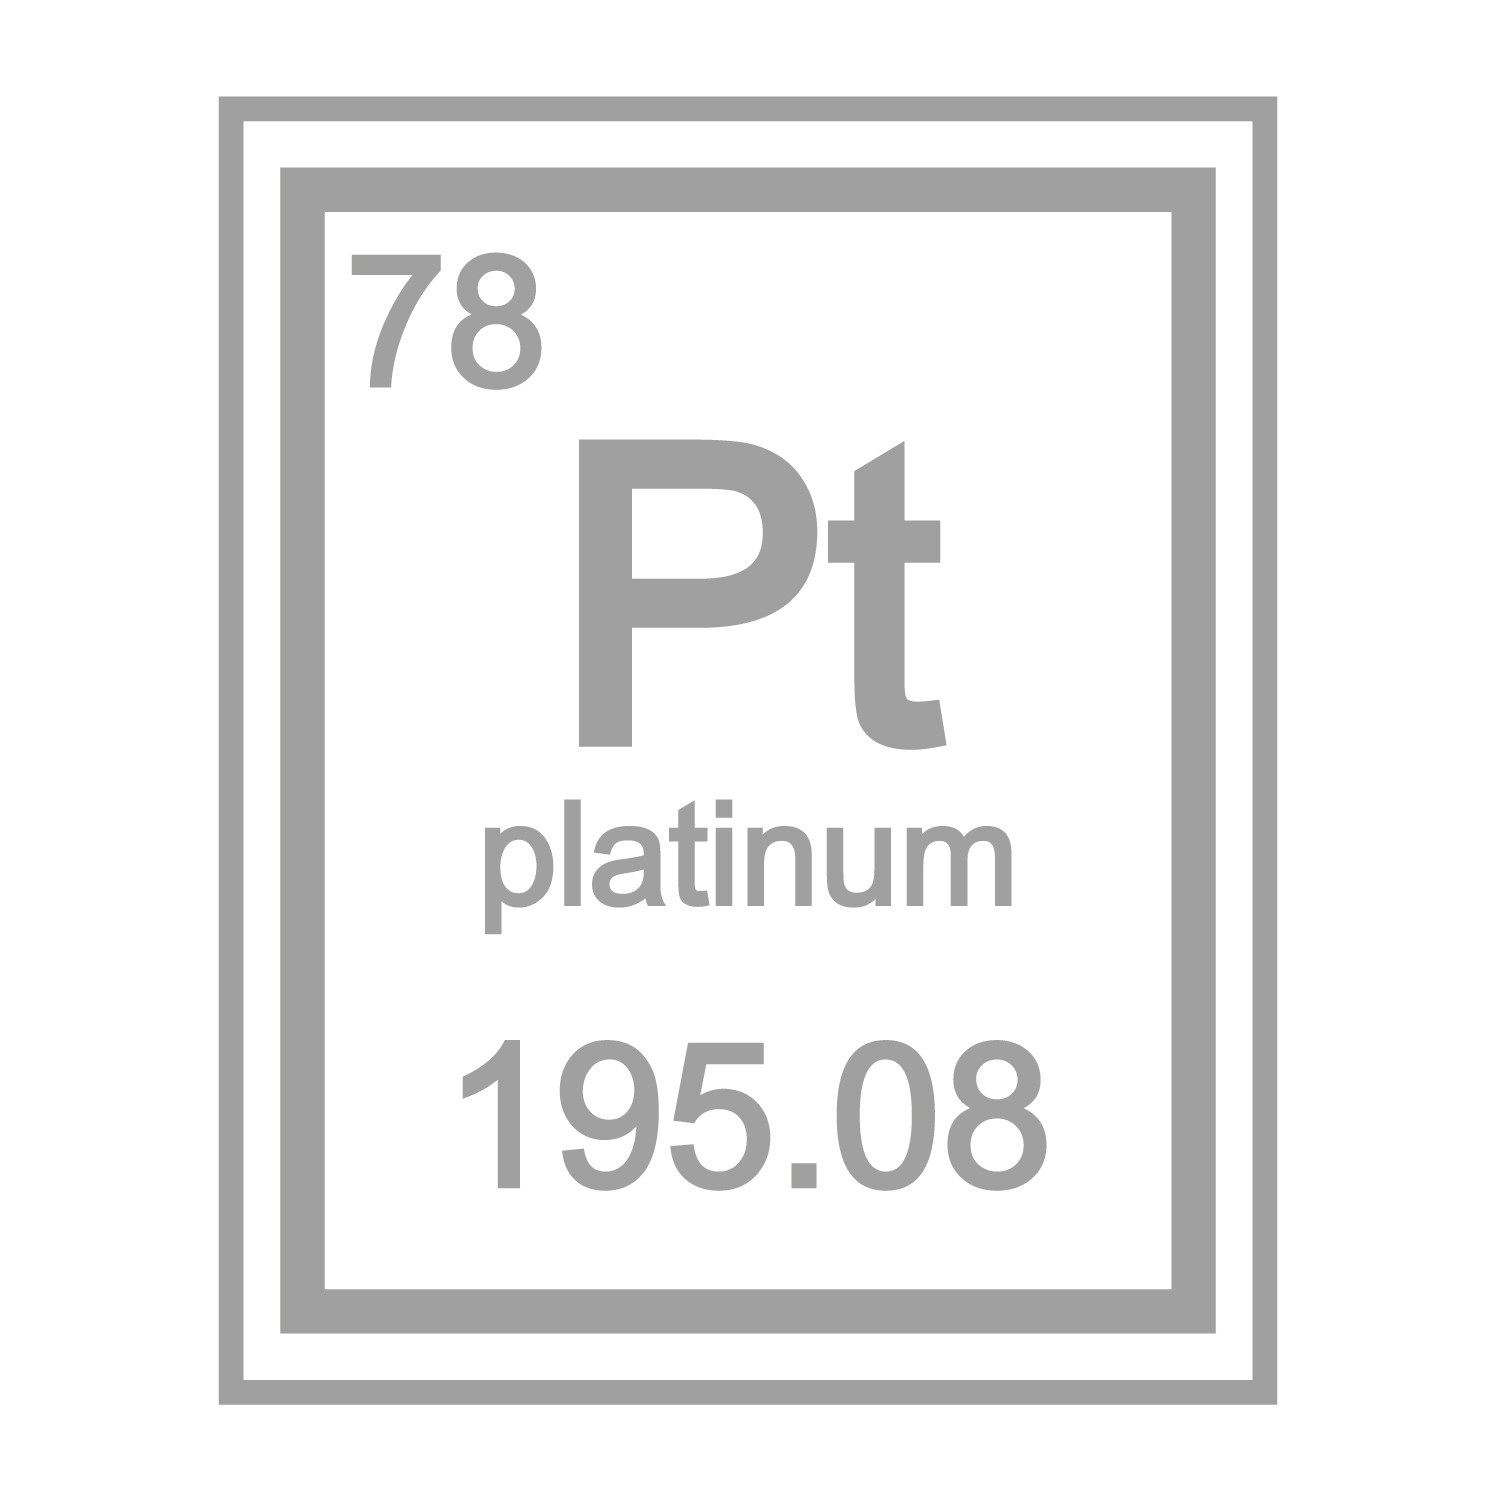 Location Periodic Table Platinum